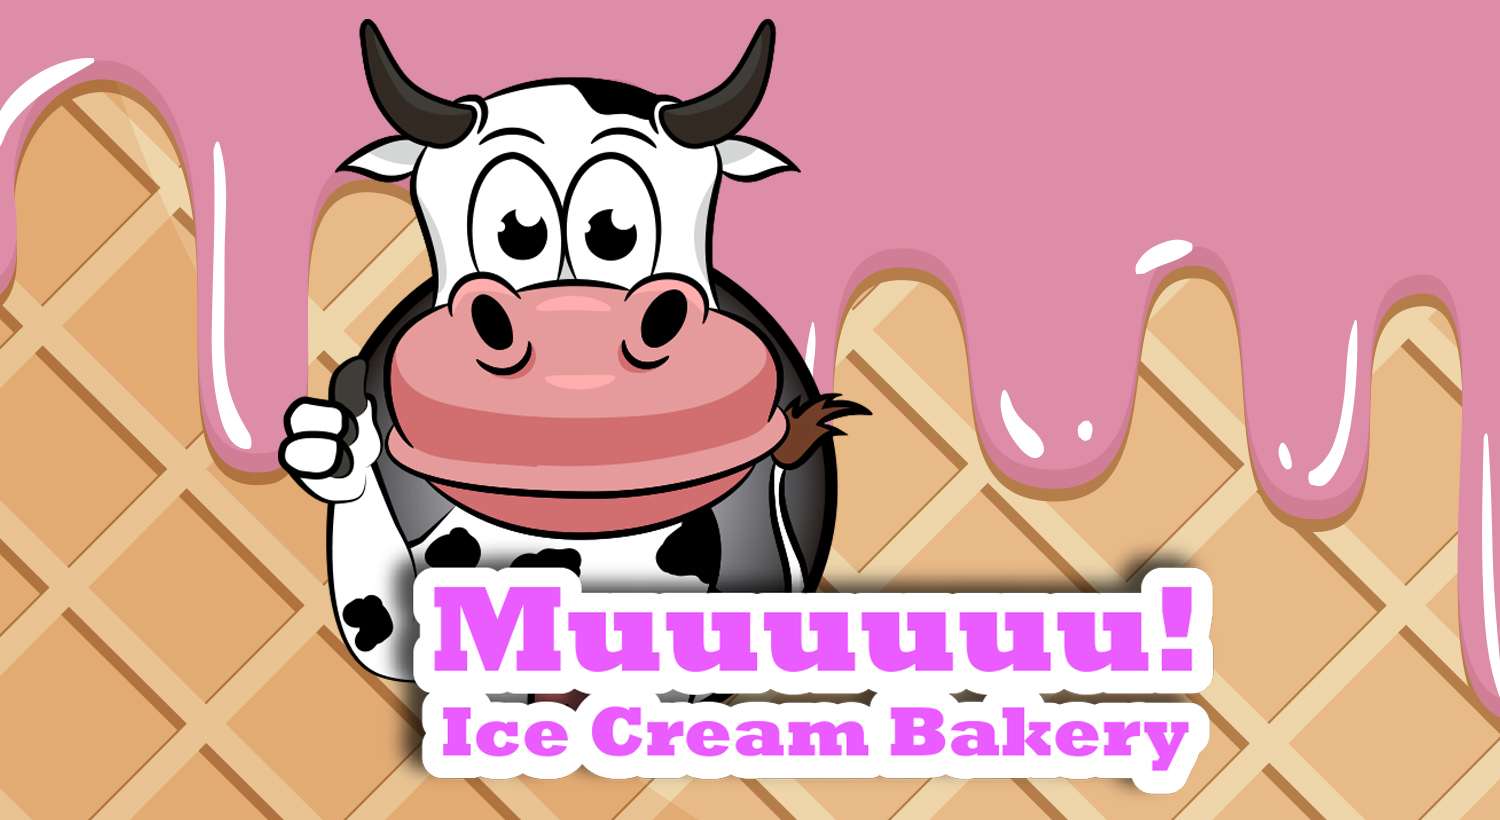 Daily Logo Challenge – Muuuuuu! Ice Cream Bakery